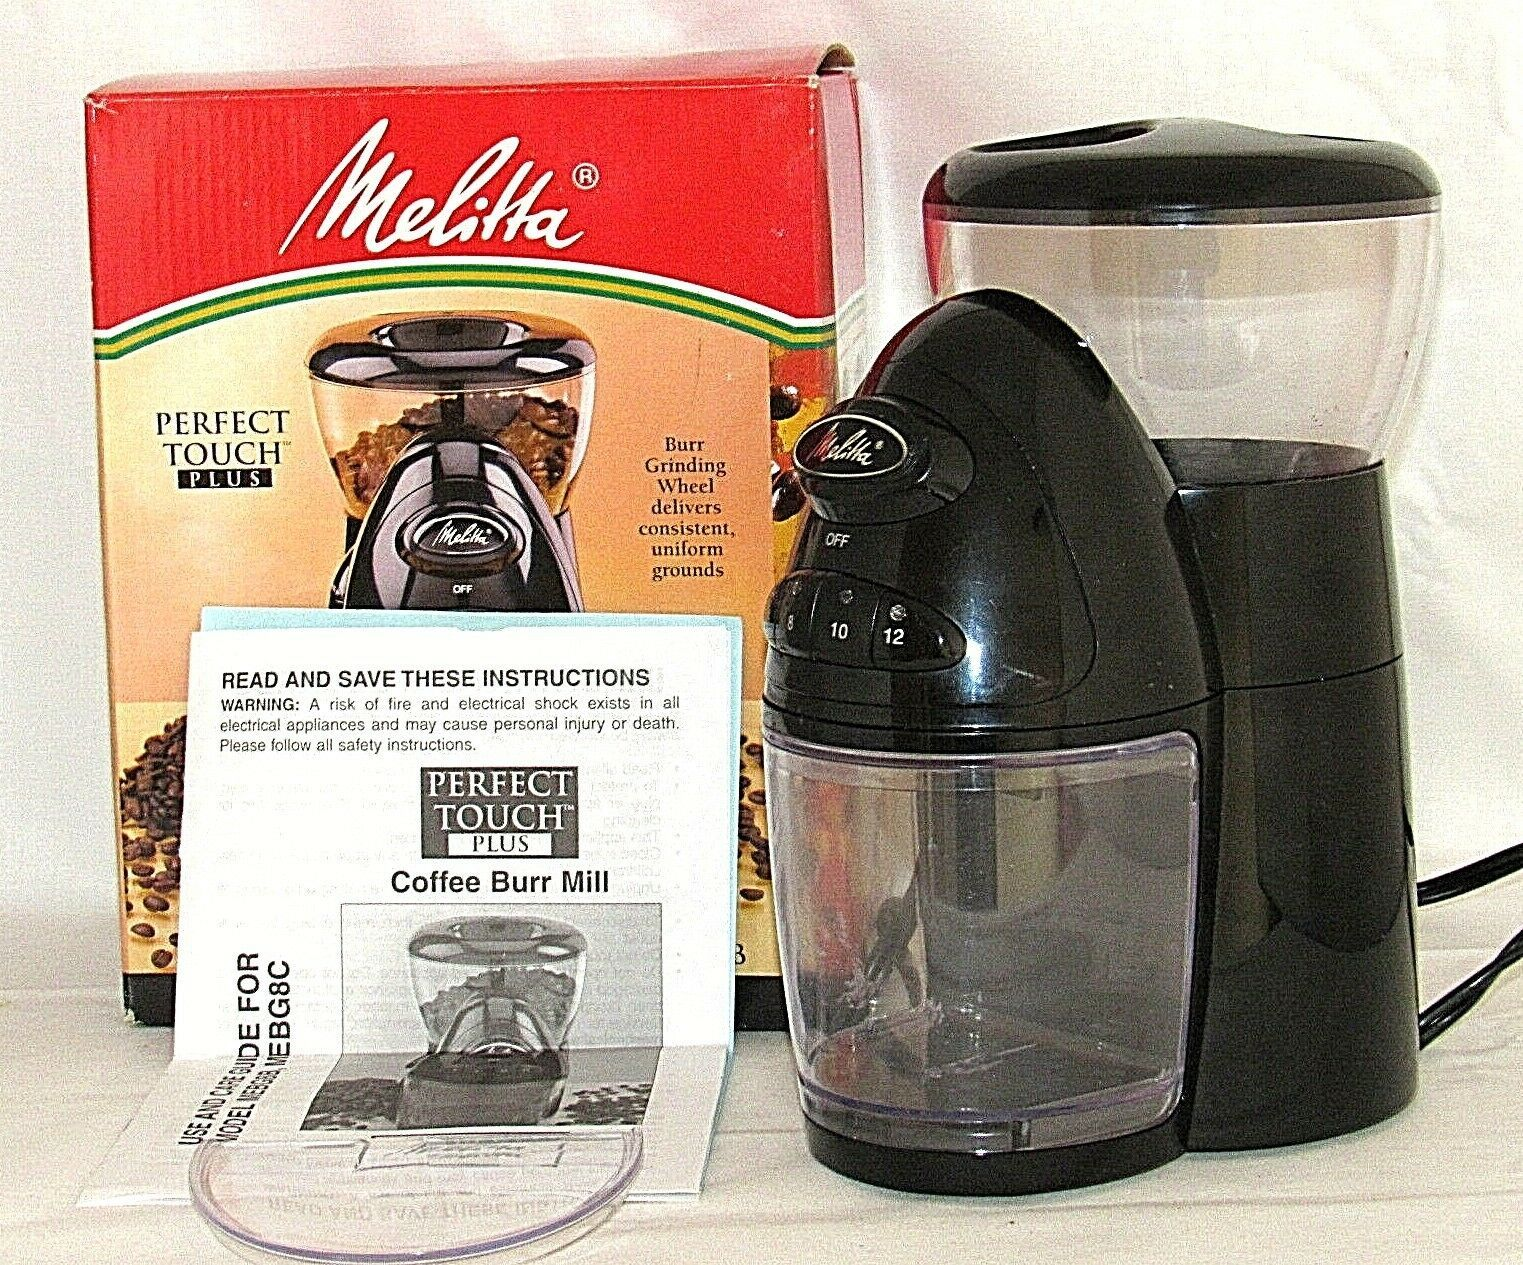 Perfect Touch Plus Melitta Programmable Coffee Mill Mebg8b Burr Grinder In 2020 Commercial Coffee Grinder Burr Coffee Grinder Best Coffee Grinder